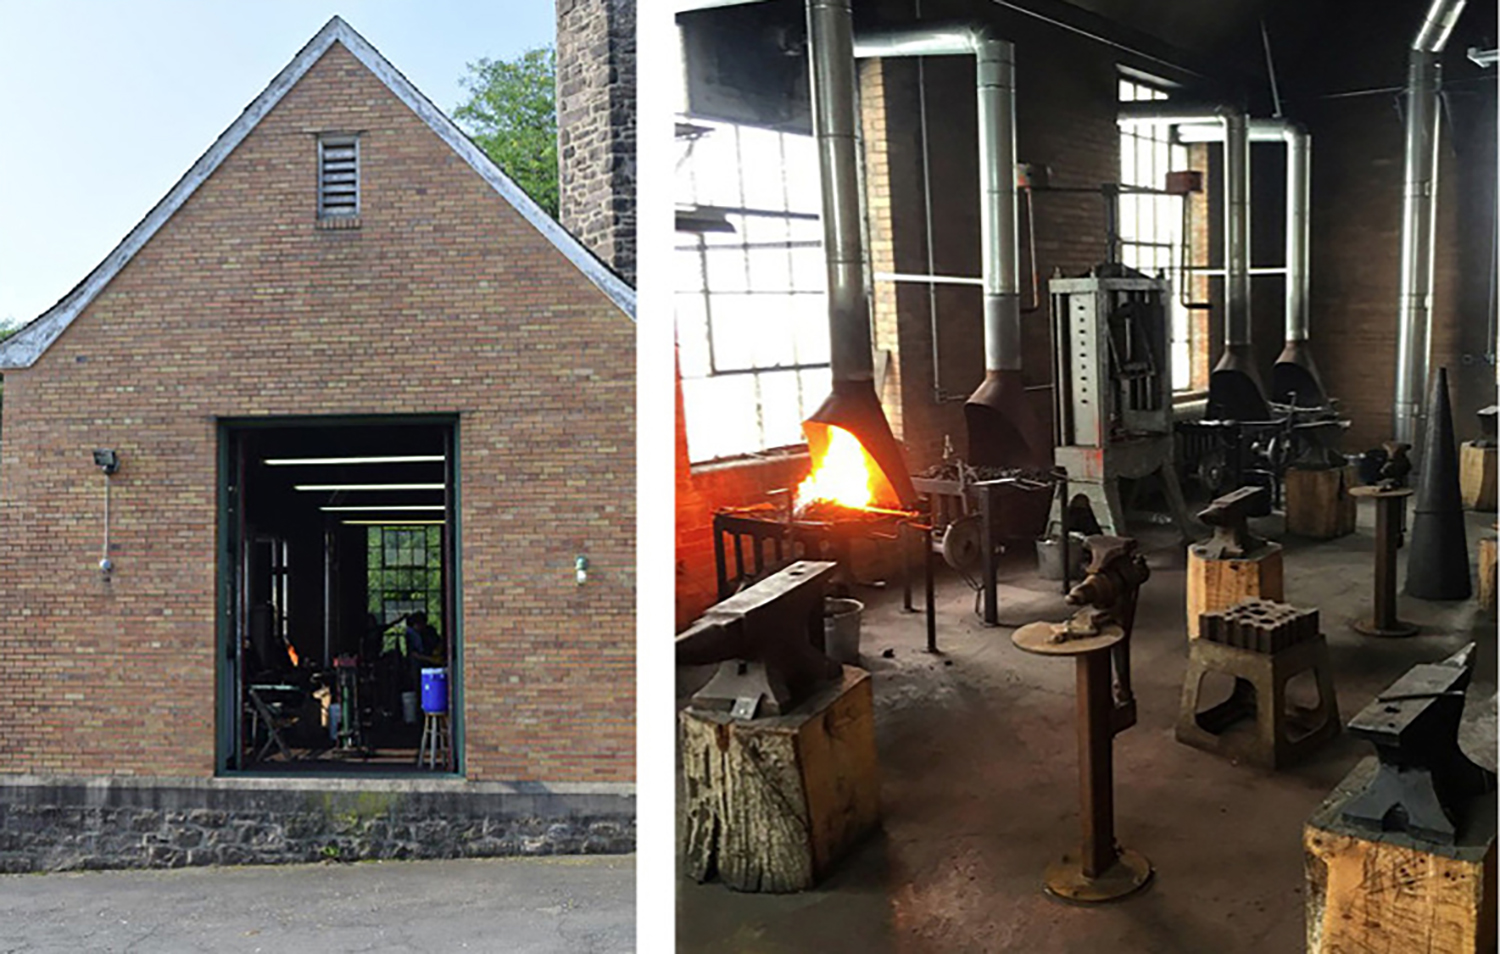 Figure 1: Outside and inside views of the Bryn Athyn College metalwork studio. The studio is located in a building that once served as a heating plant for Cairnwood Estate and Glencairn. Photographs by Warren Holzman.